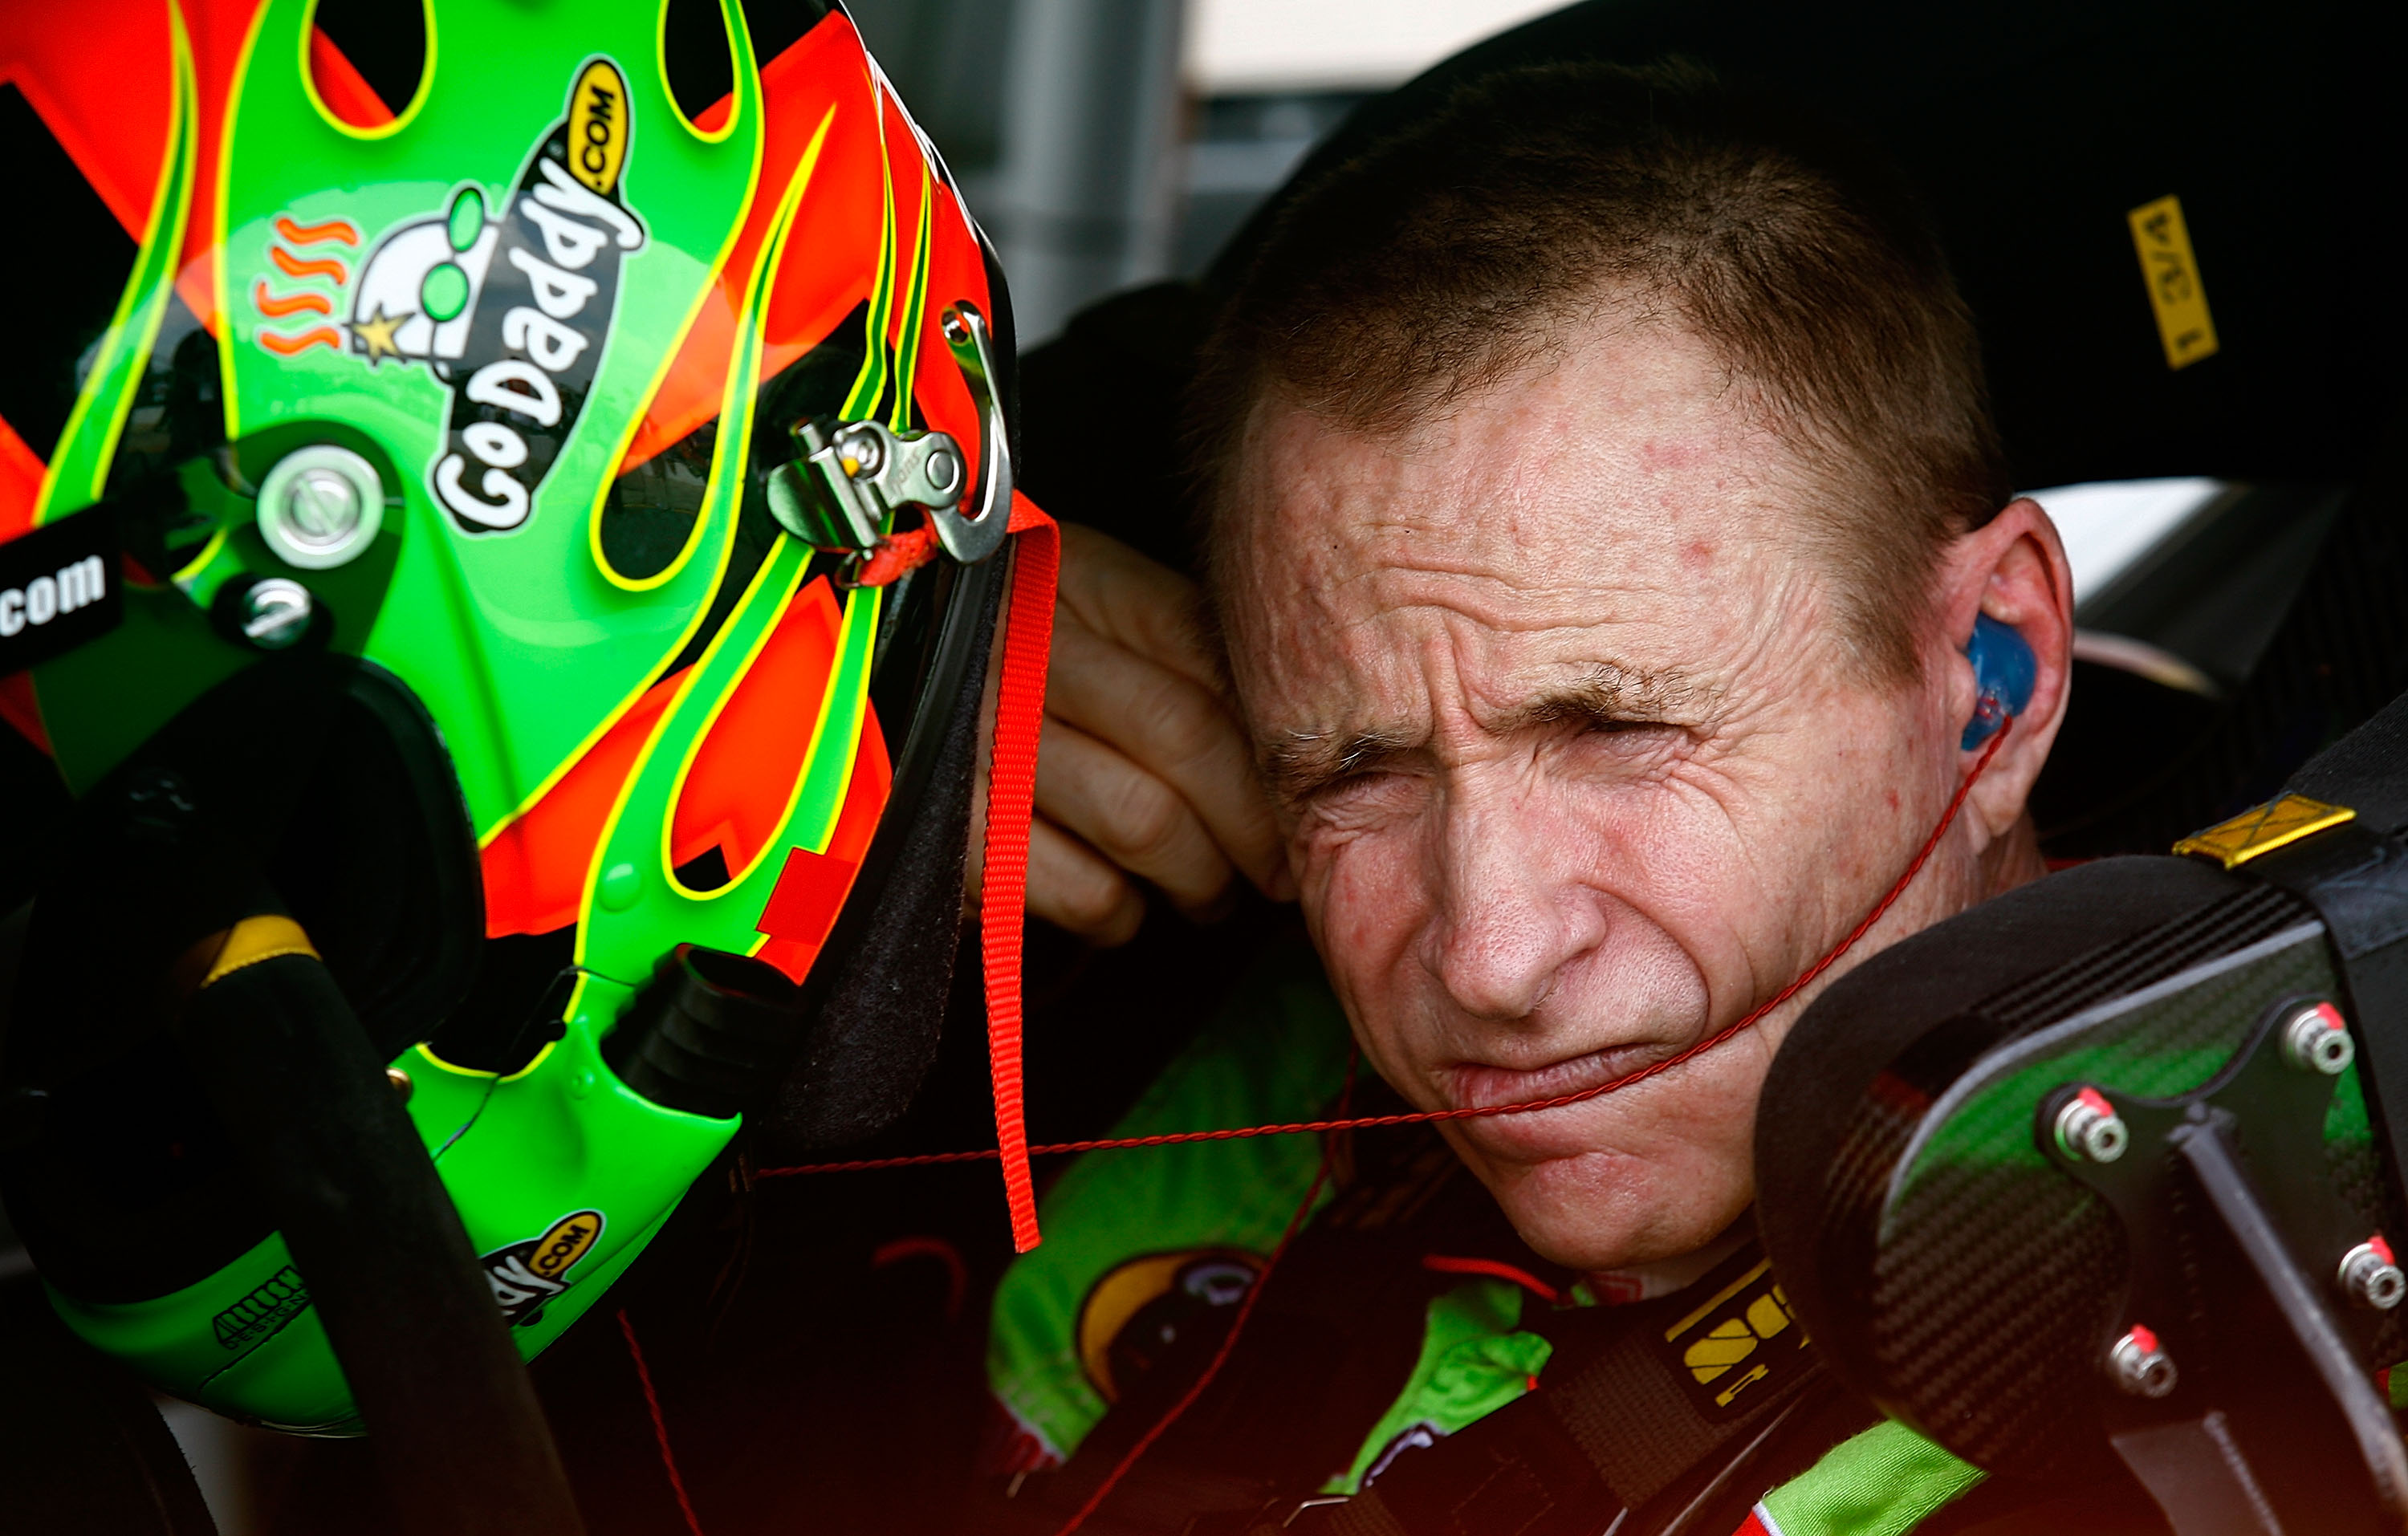 BROOKLYN, MI - AUGUST 13:  Mark Martin, driver of the #5 GoDaddy.com Chevrolet, makes adjustments in his car during qualifying for the NASCAR Sprint Cup Series CARFAX 400 at Michigan International Speedway on August 13, 2010 in Brooklyn, Michigan.  (Photo